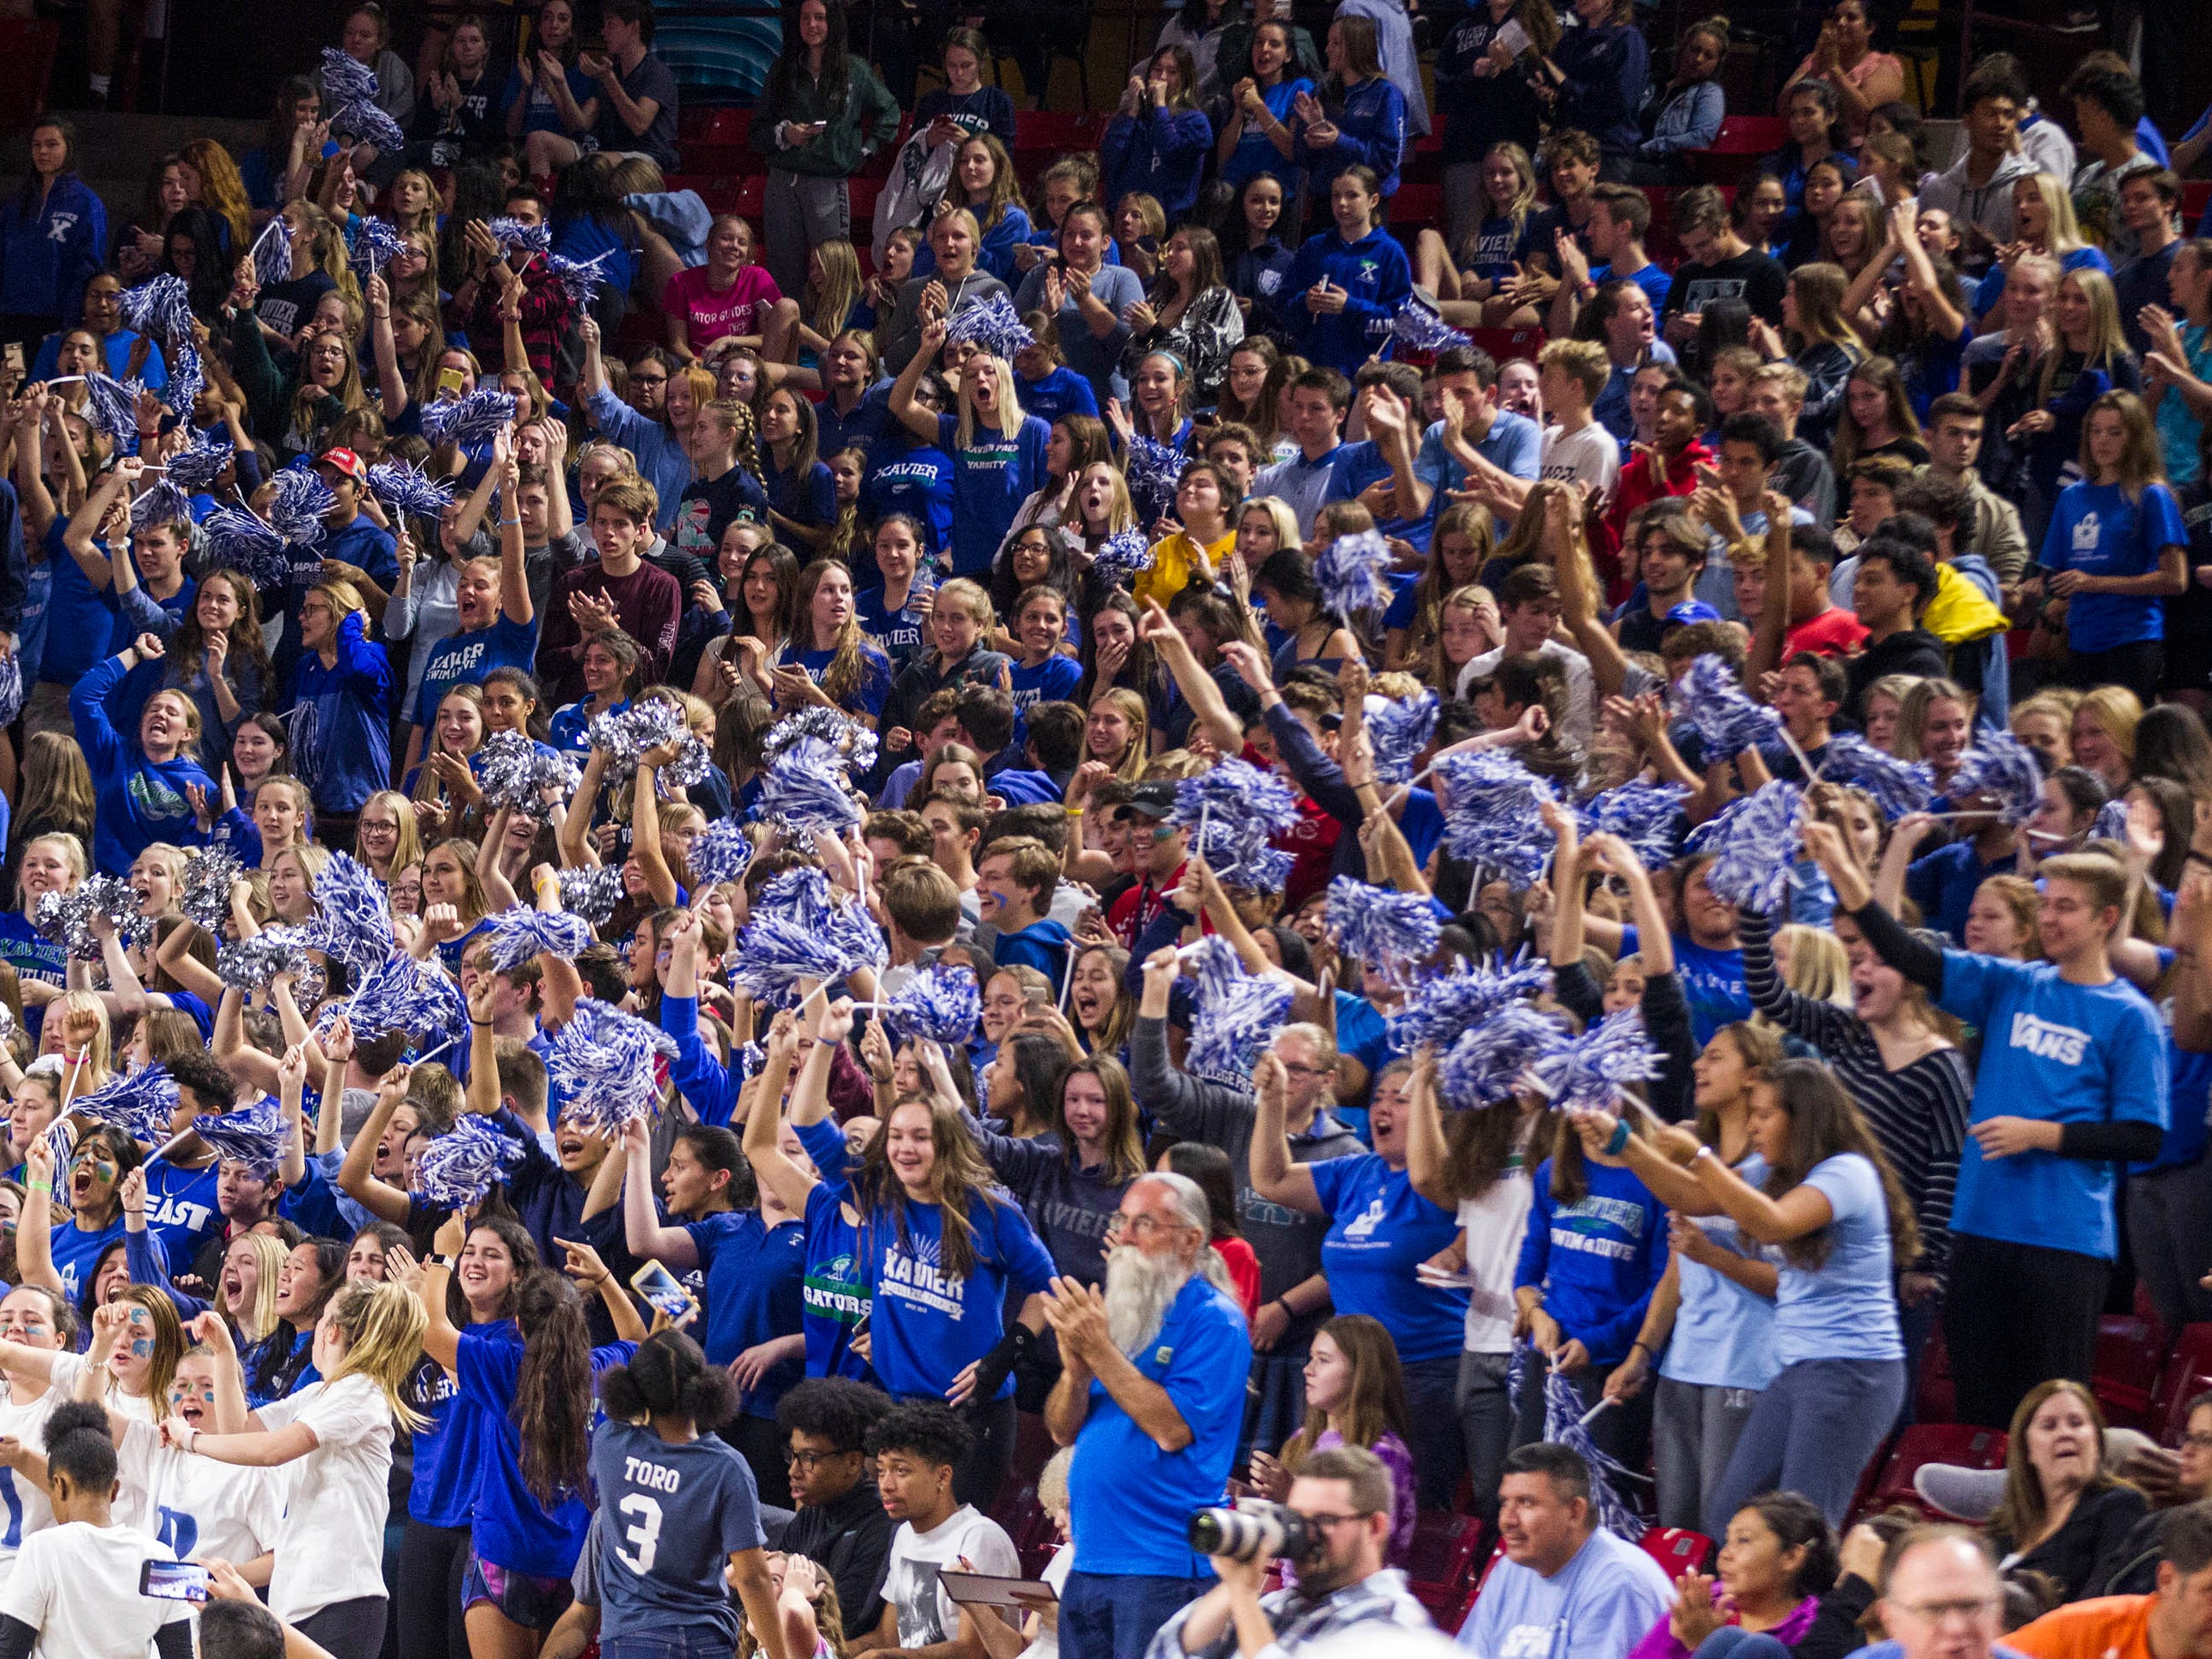 Xavier's fans cheer on their team as they play Corona del Sol's in the girls 6A volleyball state championship at Wells Fargo Arena in Tempe, Wednesday, Nov. 7, 2018.